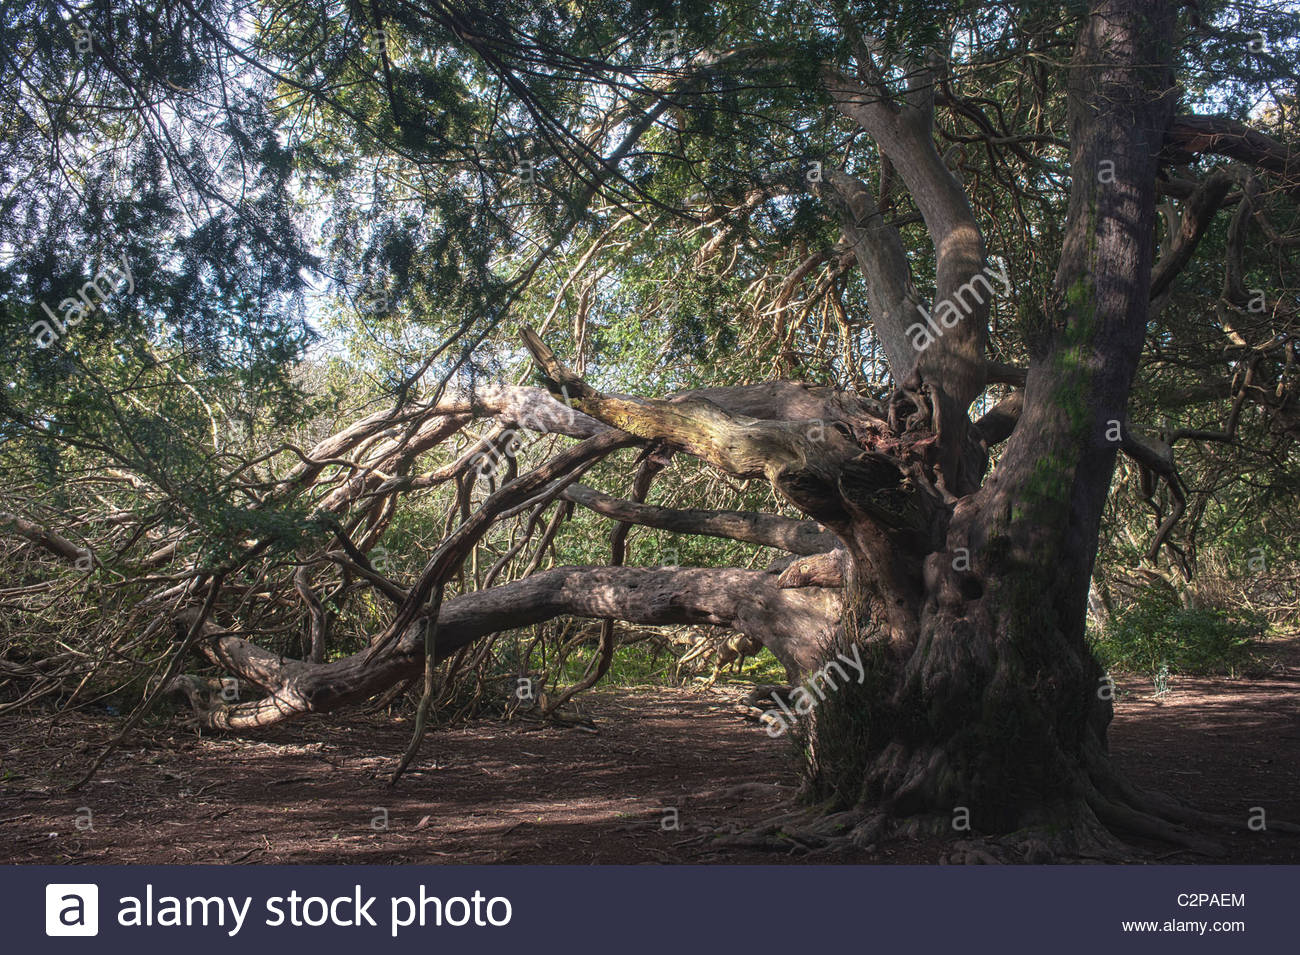 Kingsley Vale Sussex England ancient yew tree growing forest woodland 2000 years old Taxus baccata Spring March - Stock Image